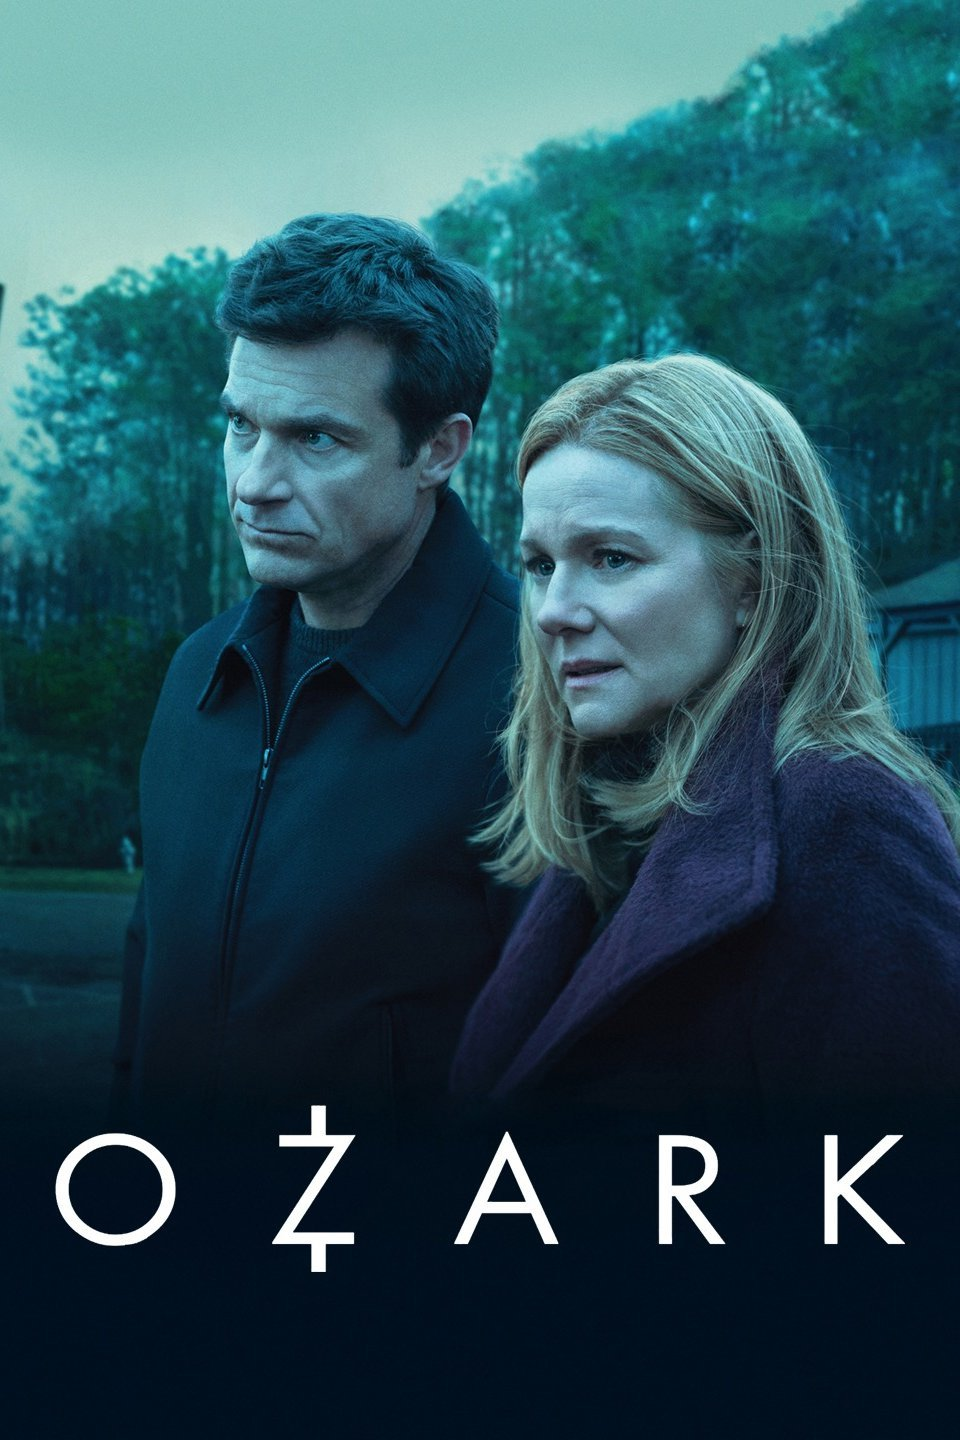 Ozark Season 2 - Season 2 developed on the story of Marty Byrde and his family. His wife Wendy found out about Marty's predicament and decided to play more of an active role. The stakes got higher when the drug cartels lawyer Helen intervened to make sure Marty was doing his job.The family come up with an idea to launder money through a casino and they face a lot of problems trying to achieve this goal.